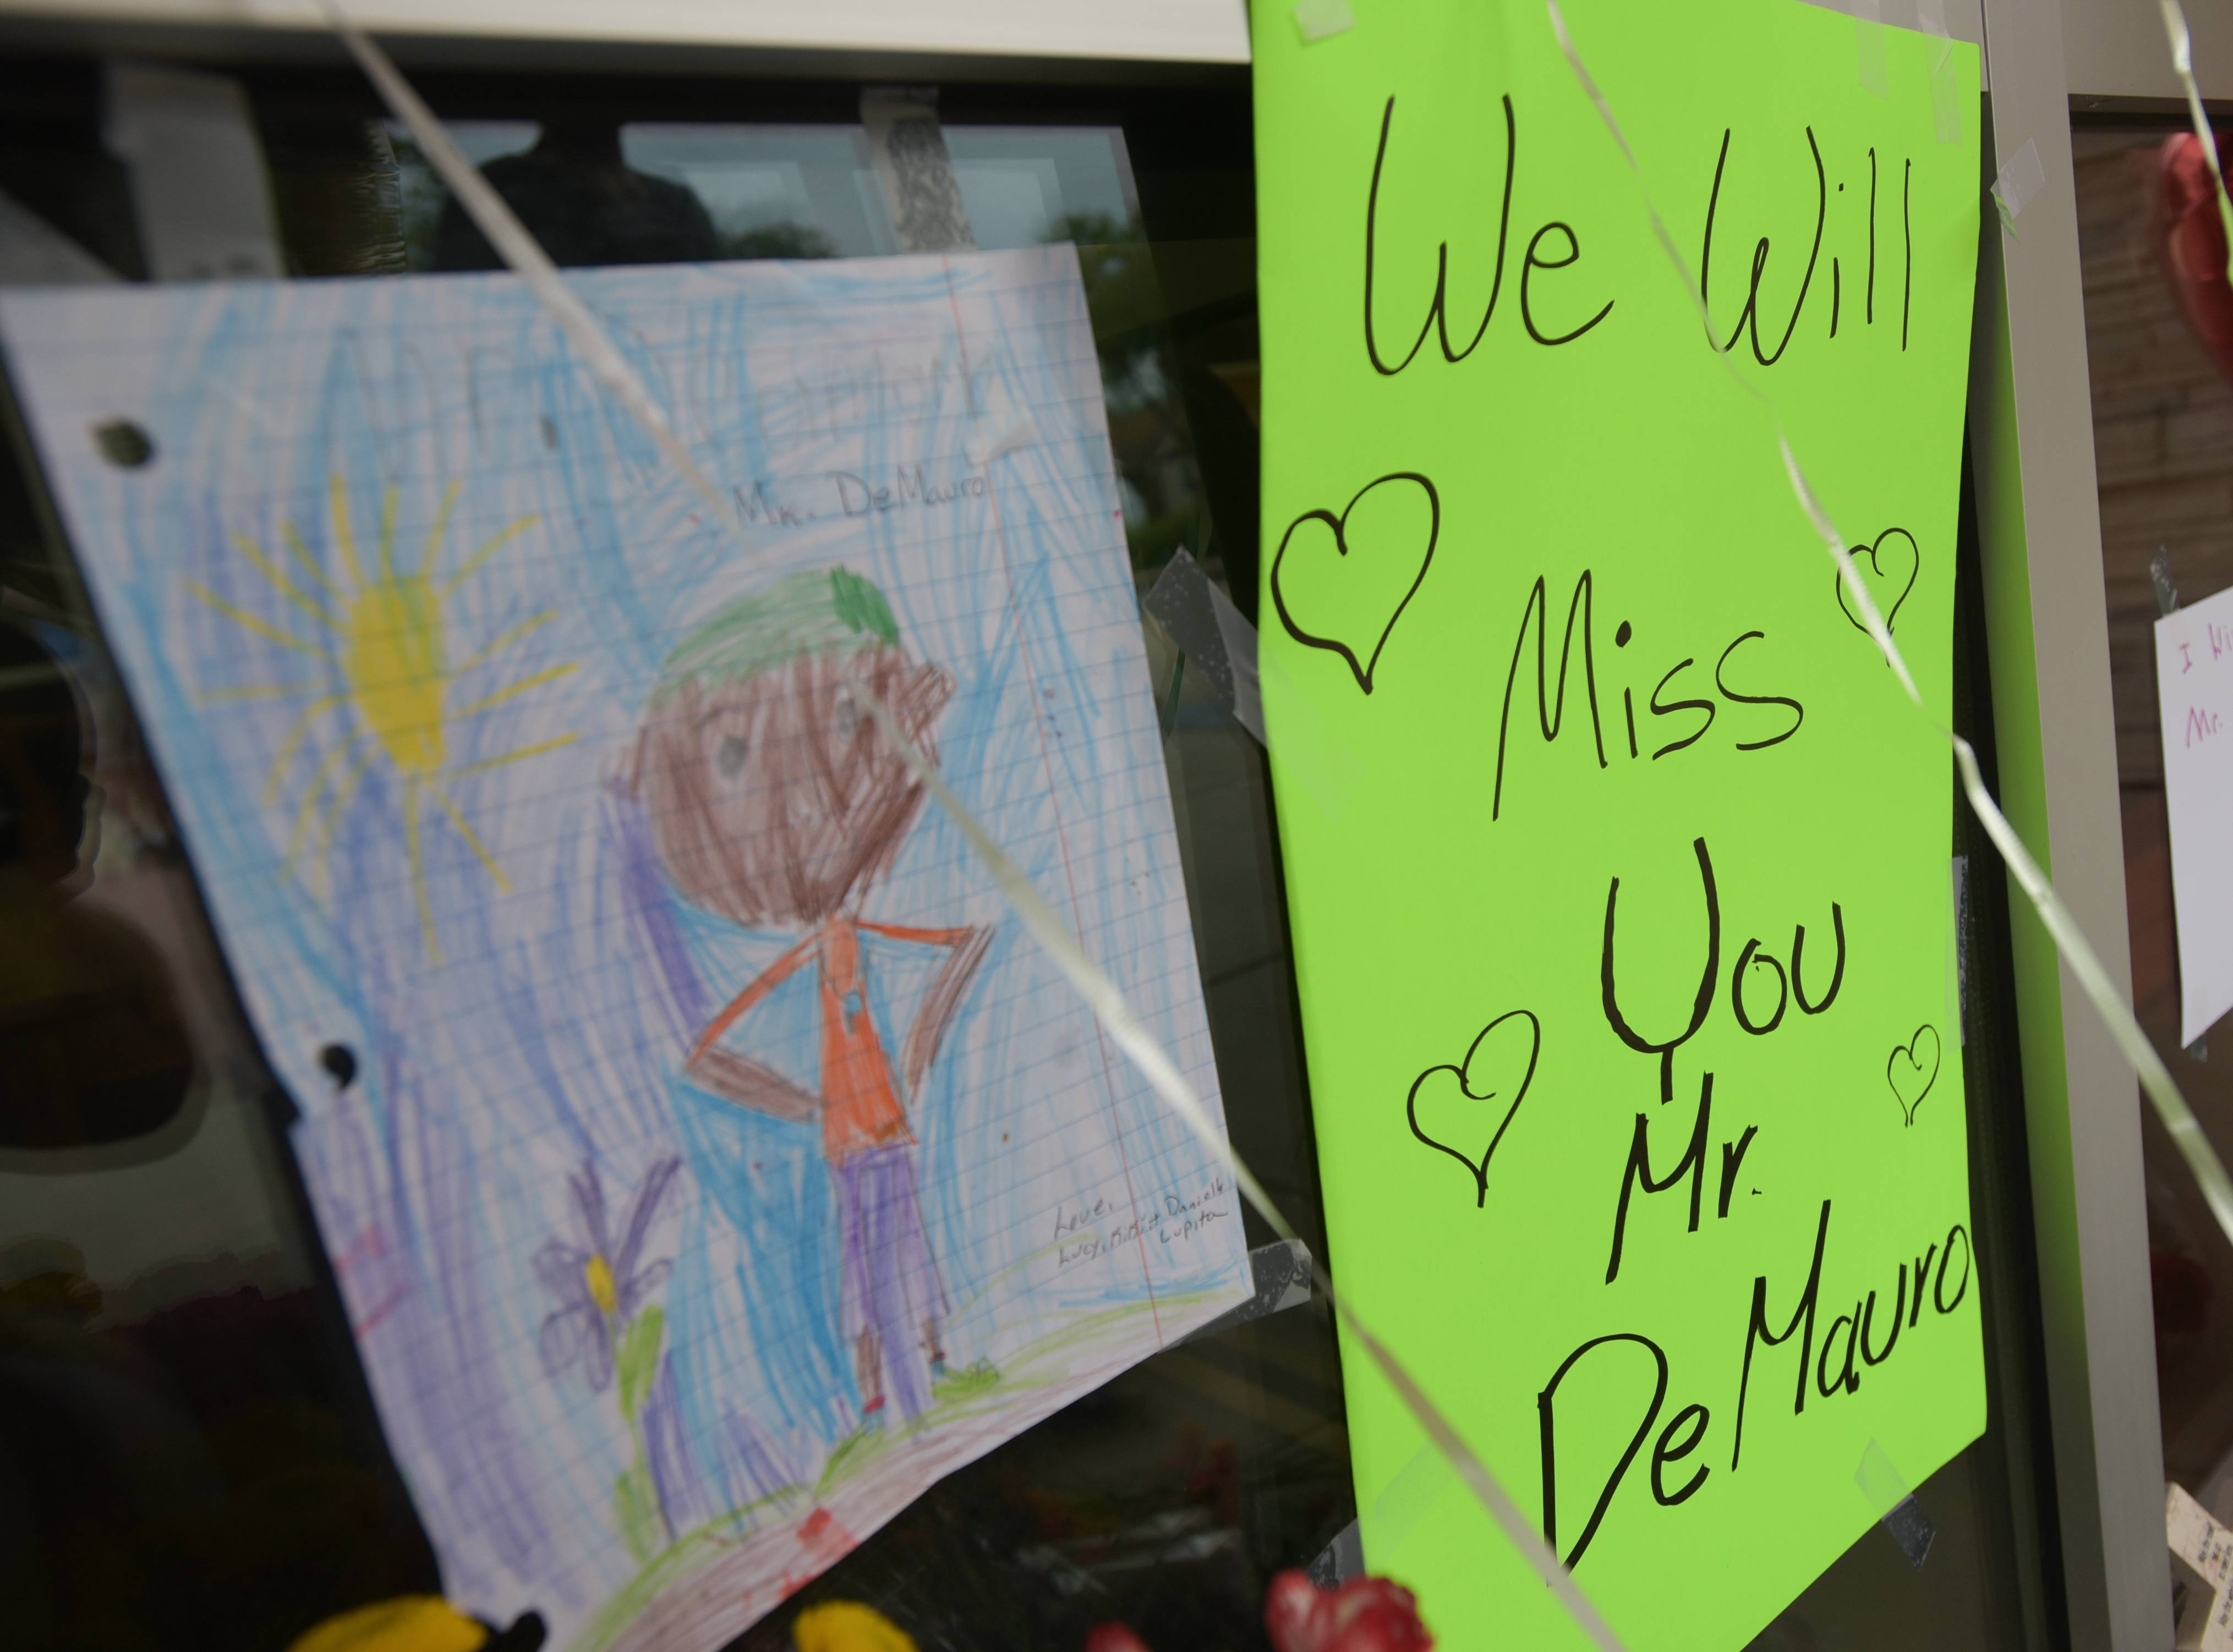 Flowers and notes were left by the door at Tioga Elementary School in Bensenville for teacher Thomas DeMauro, who was killed Saturday in a plane crash in northern Wisconsin.